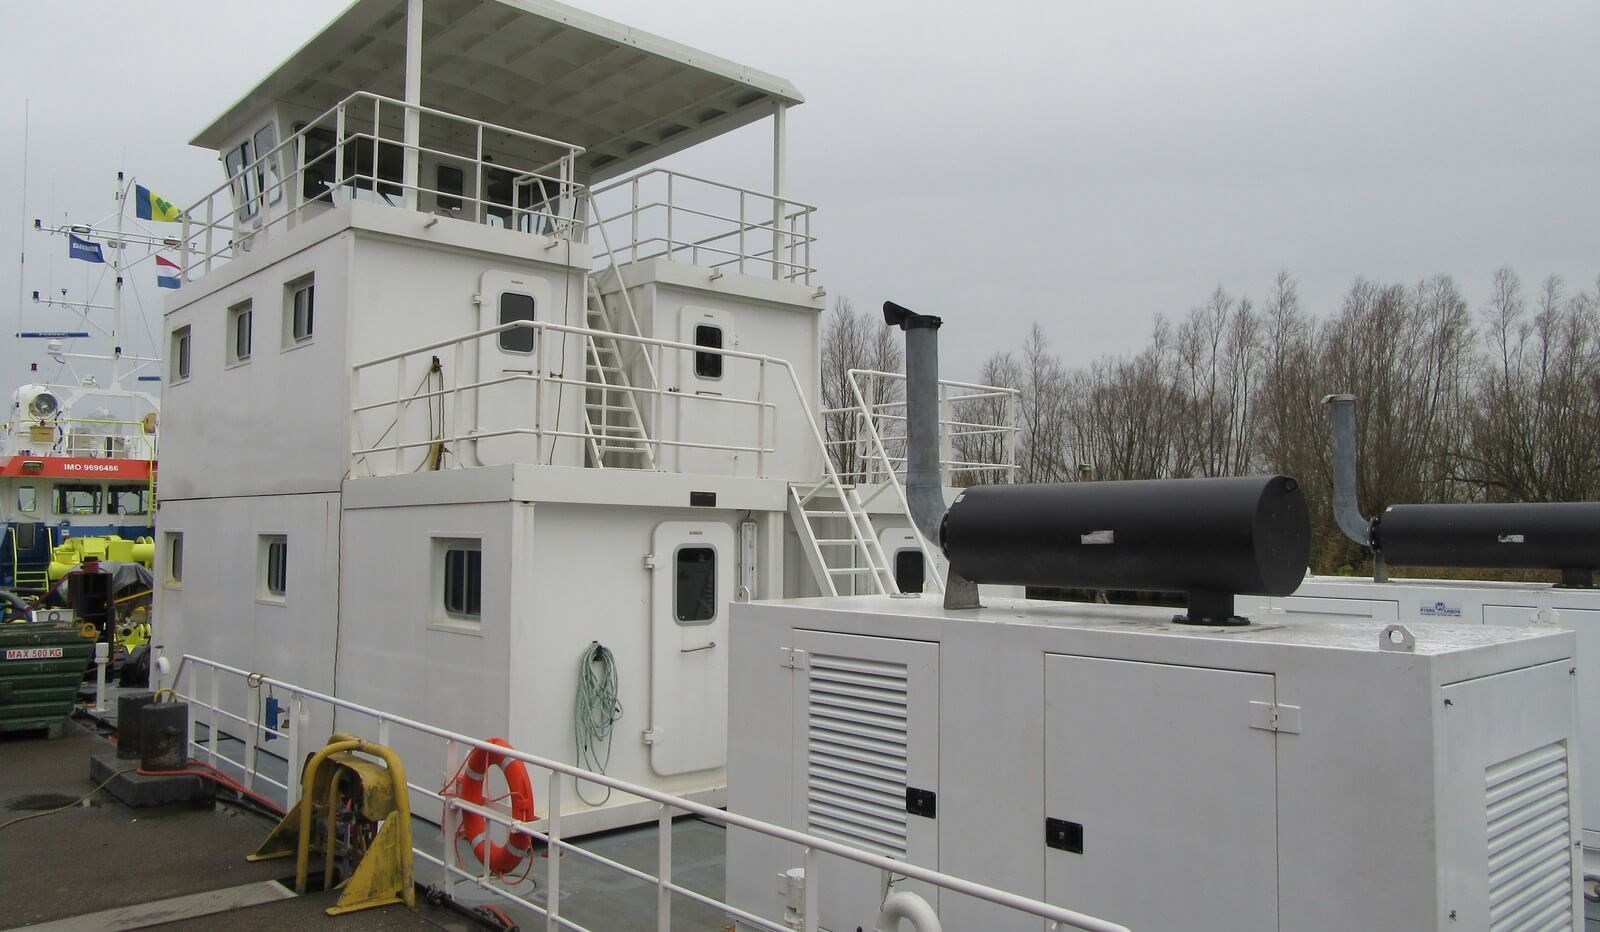 modular push barge 1807 for sale 07425 (12)